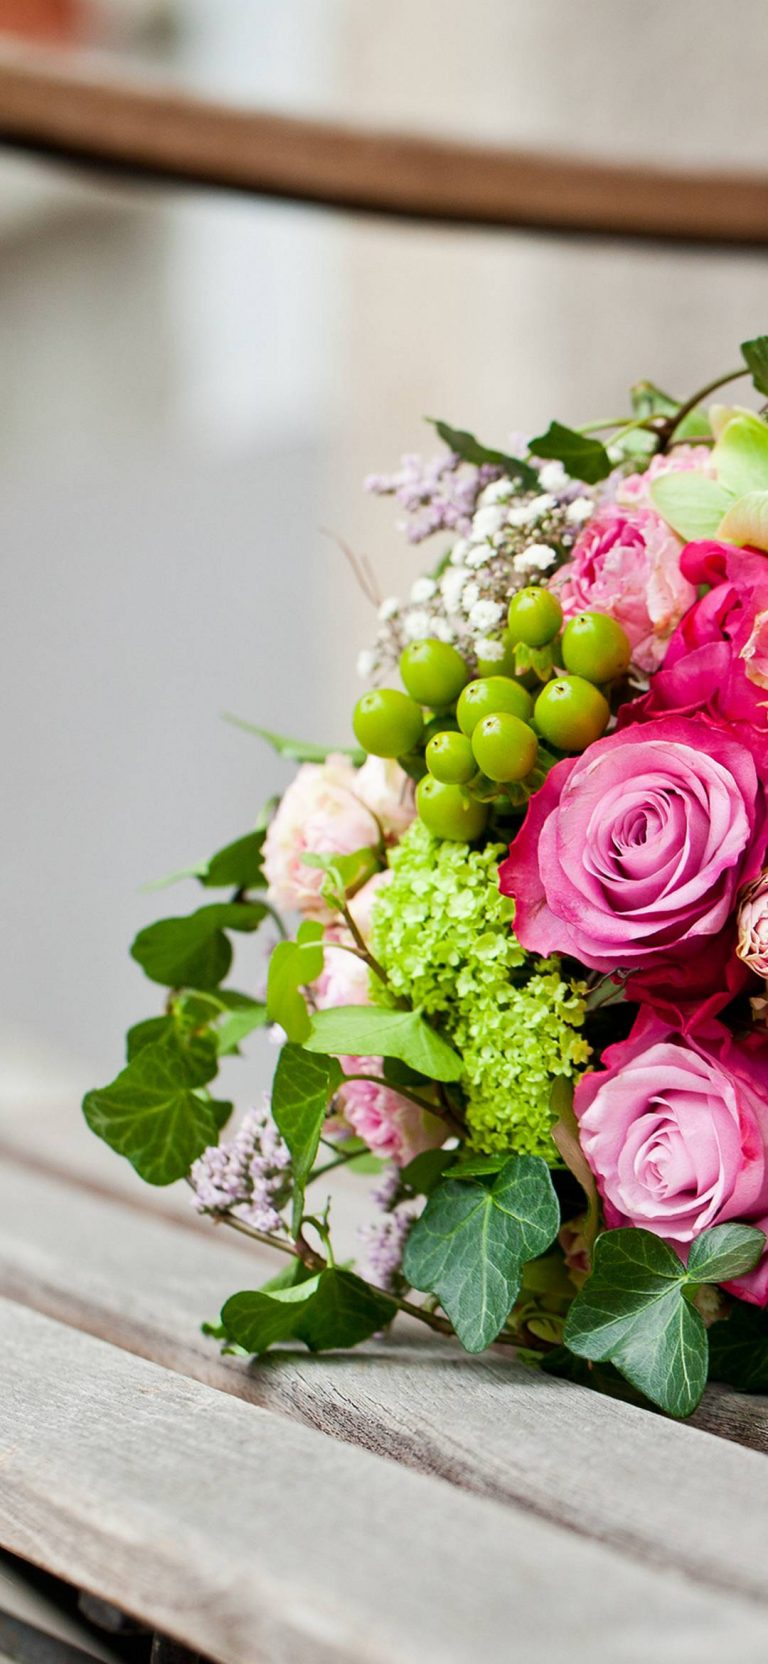 Pink Flowers Bouquet Leaves Roses 1080x2340 768x1664